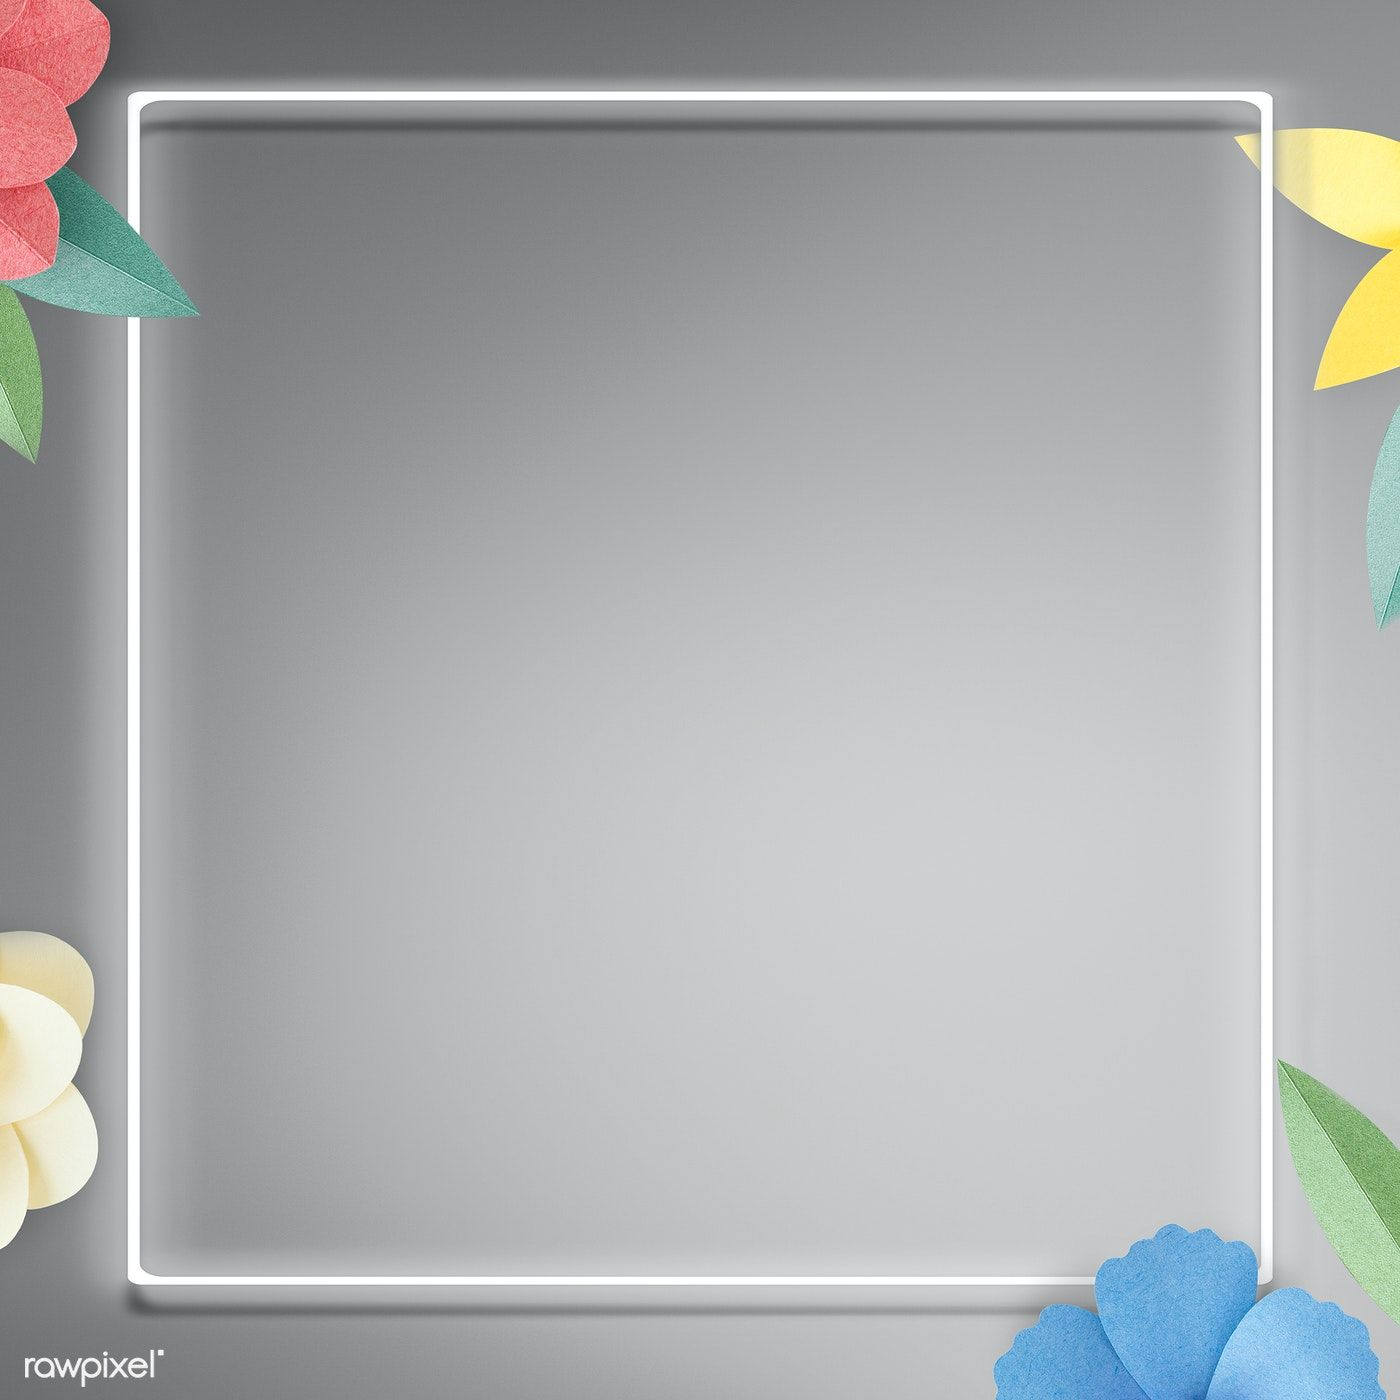 Download Premium Illustration Of Flower Decorated Neon Frame On Gray Wall Flower Decorations Grey Walls Frame